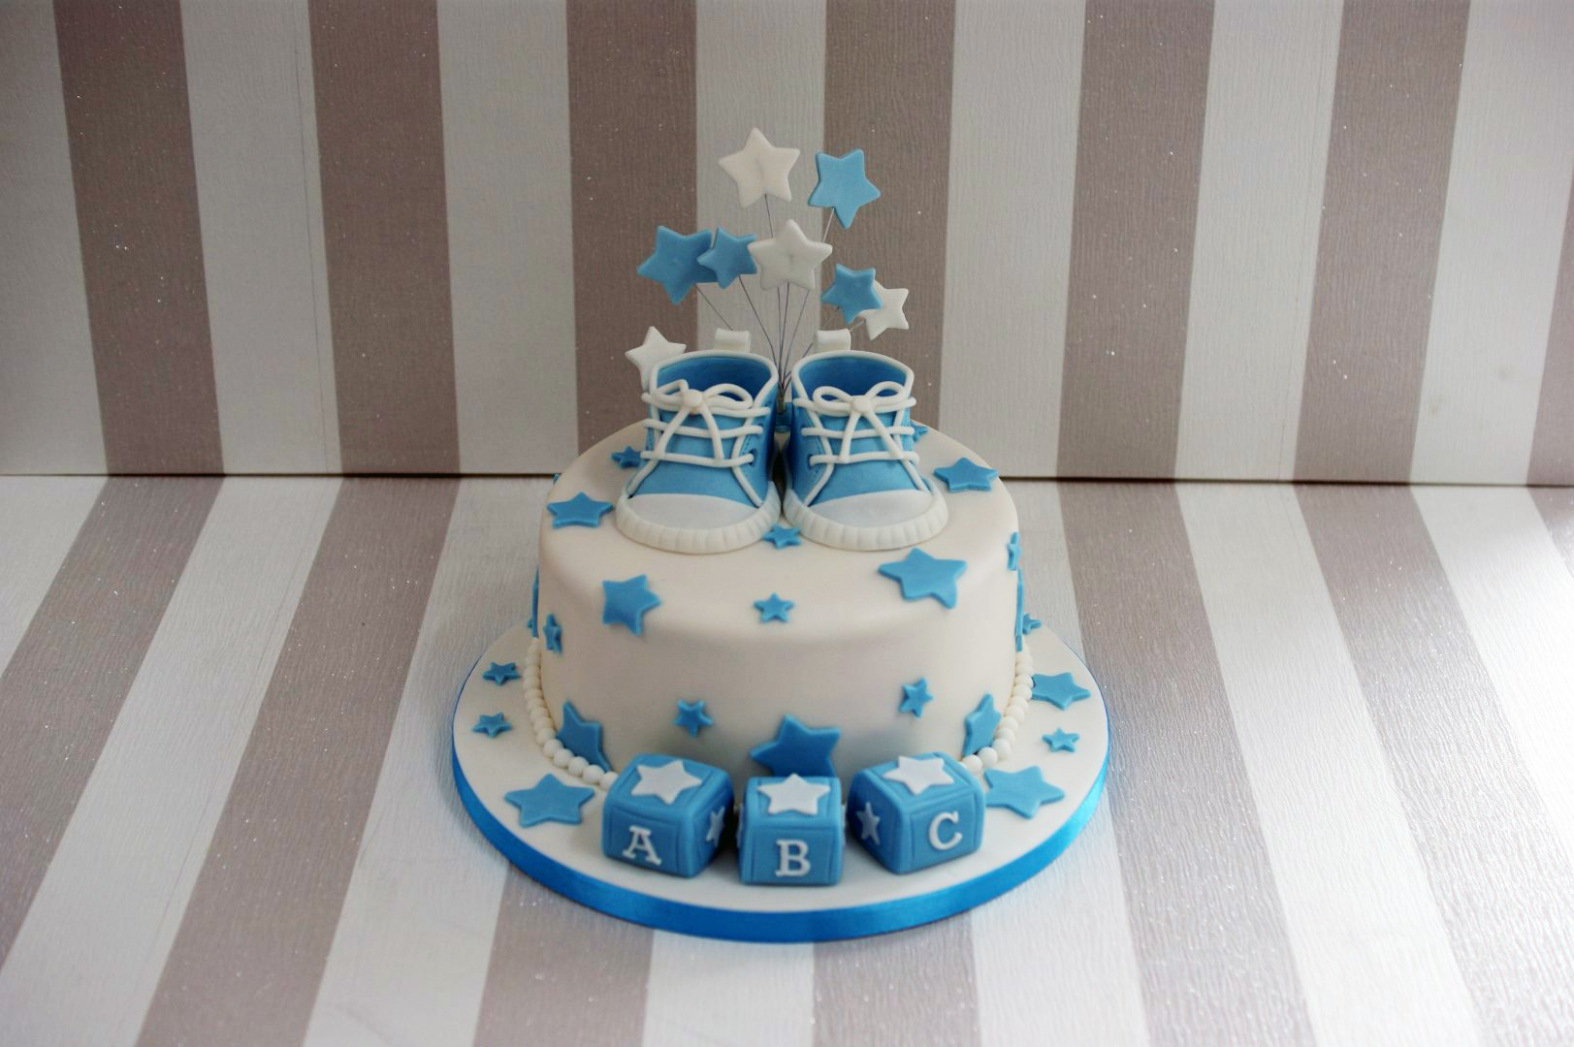 Modular 29 Irresistible 2 Tier Baby Boy Shower Cakes | Cookinginstilettos pertaining to Baby Boy Shower Cakes